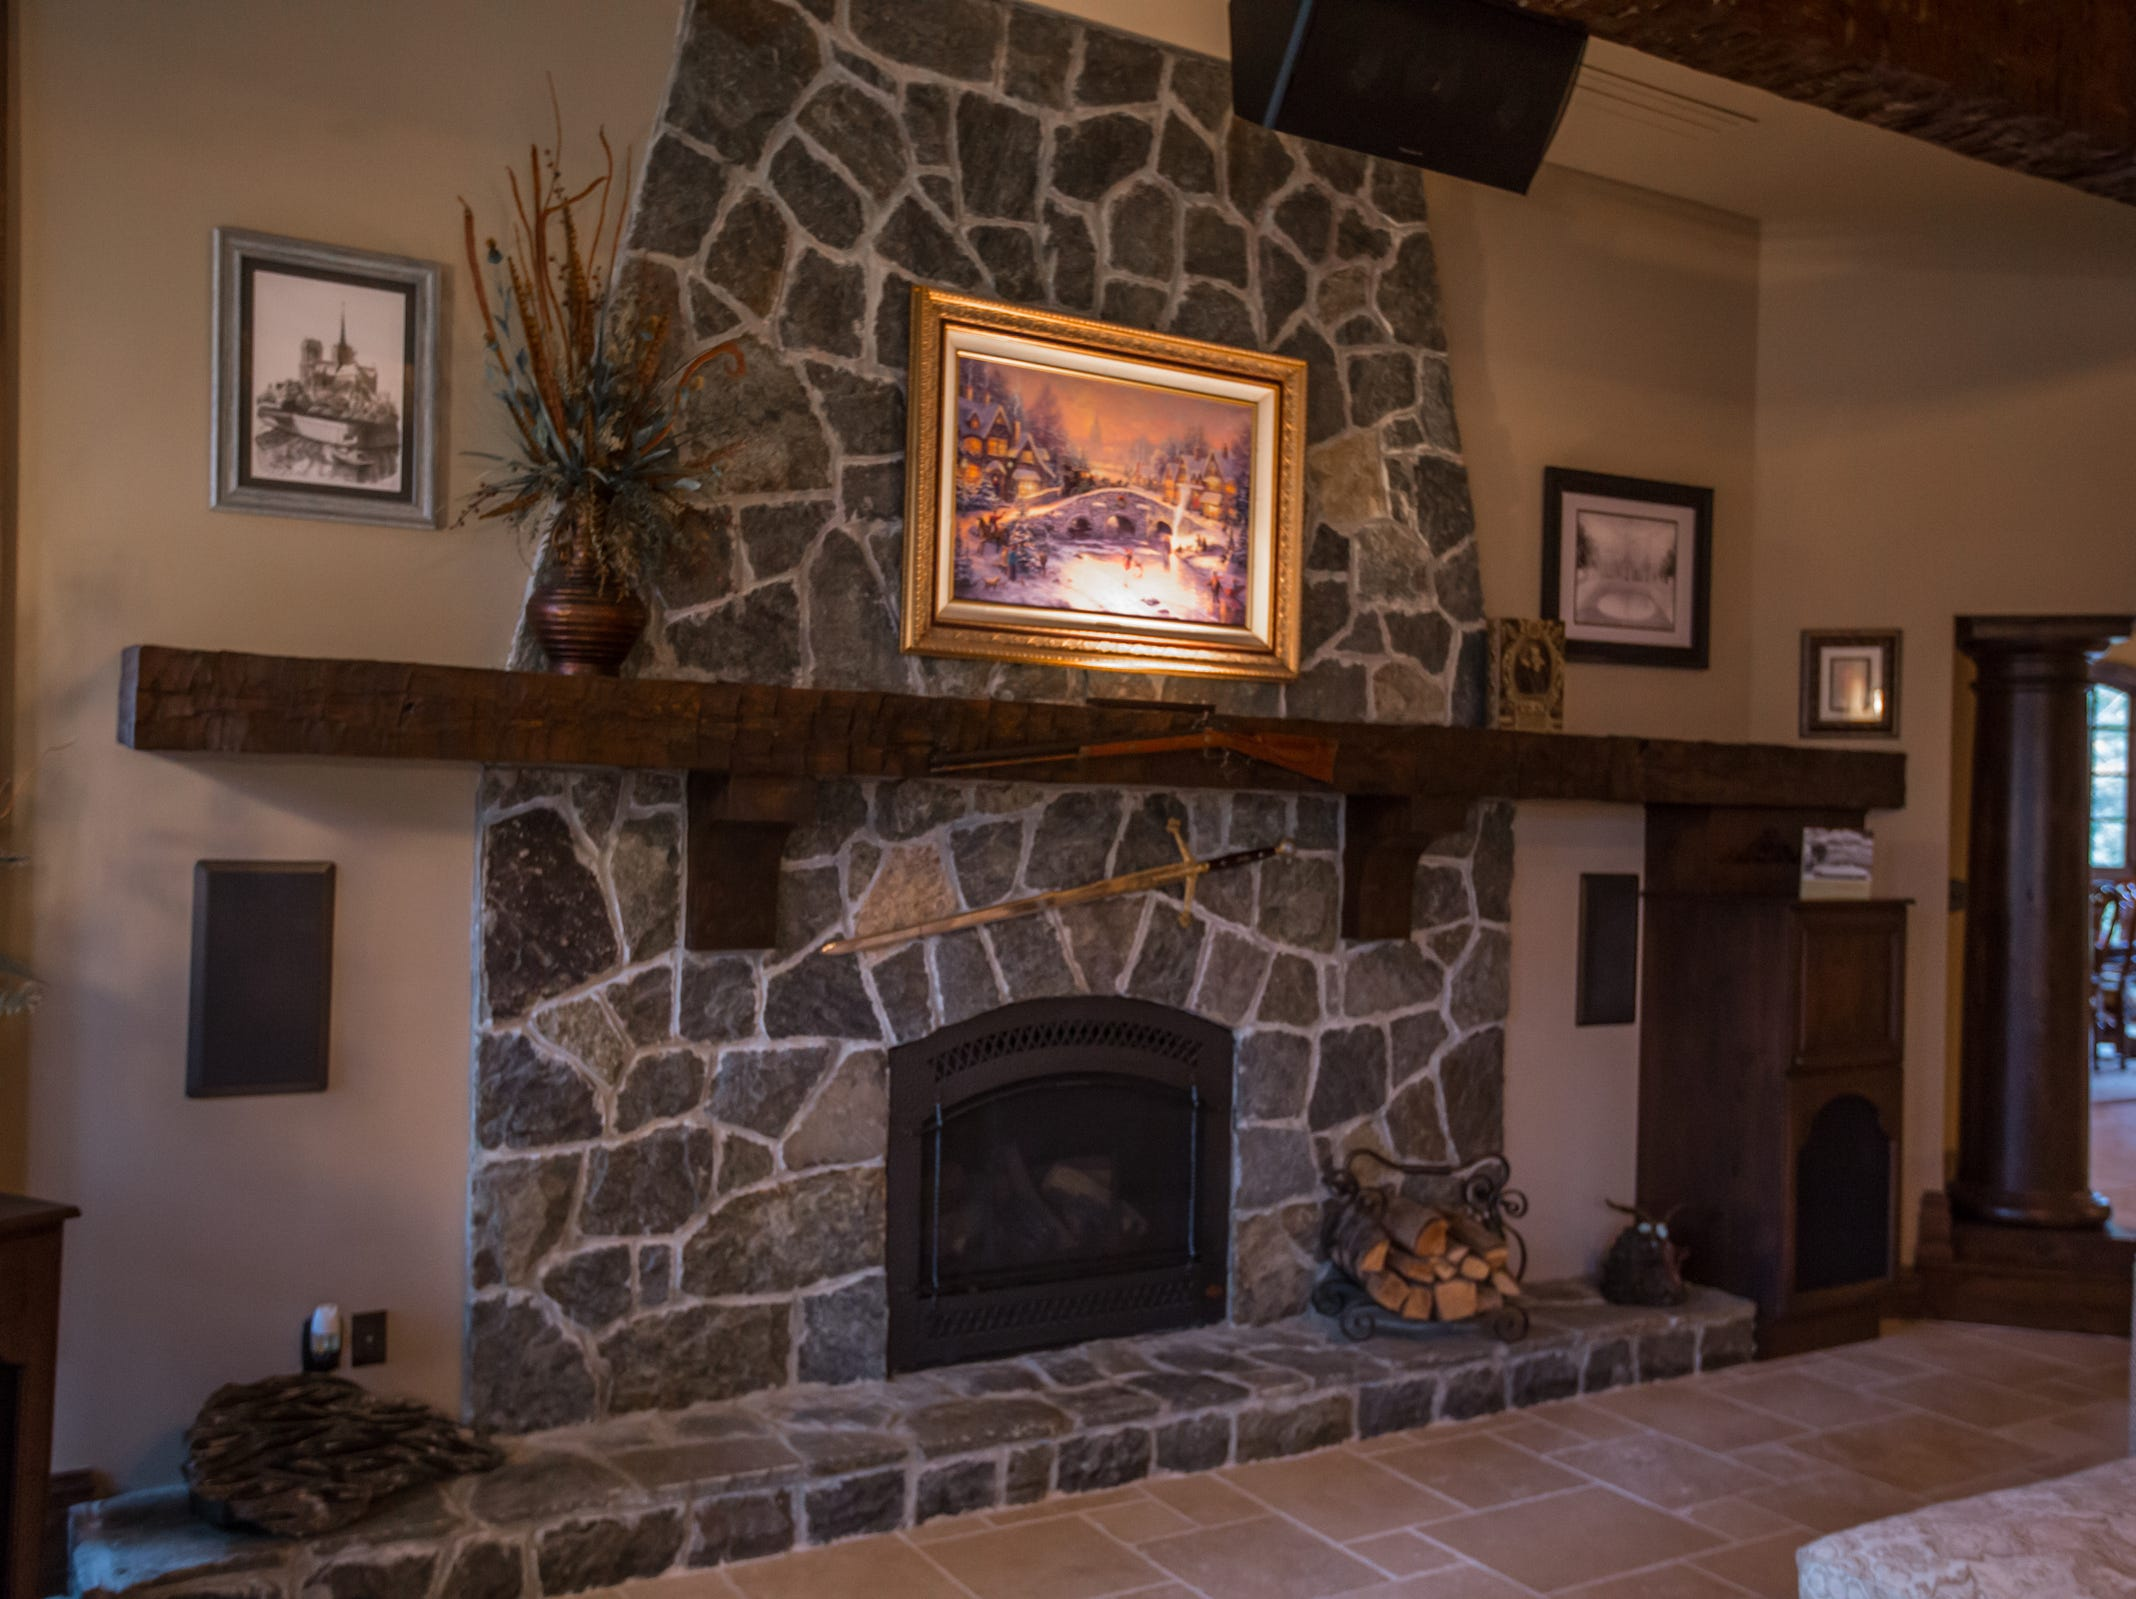 A natural stone fireplace in the great room of the home envisioned after the Biltmore Estate designed by Alex Bogarts and built by an award winning builder as his own personal residence.